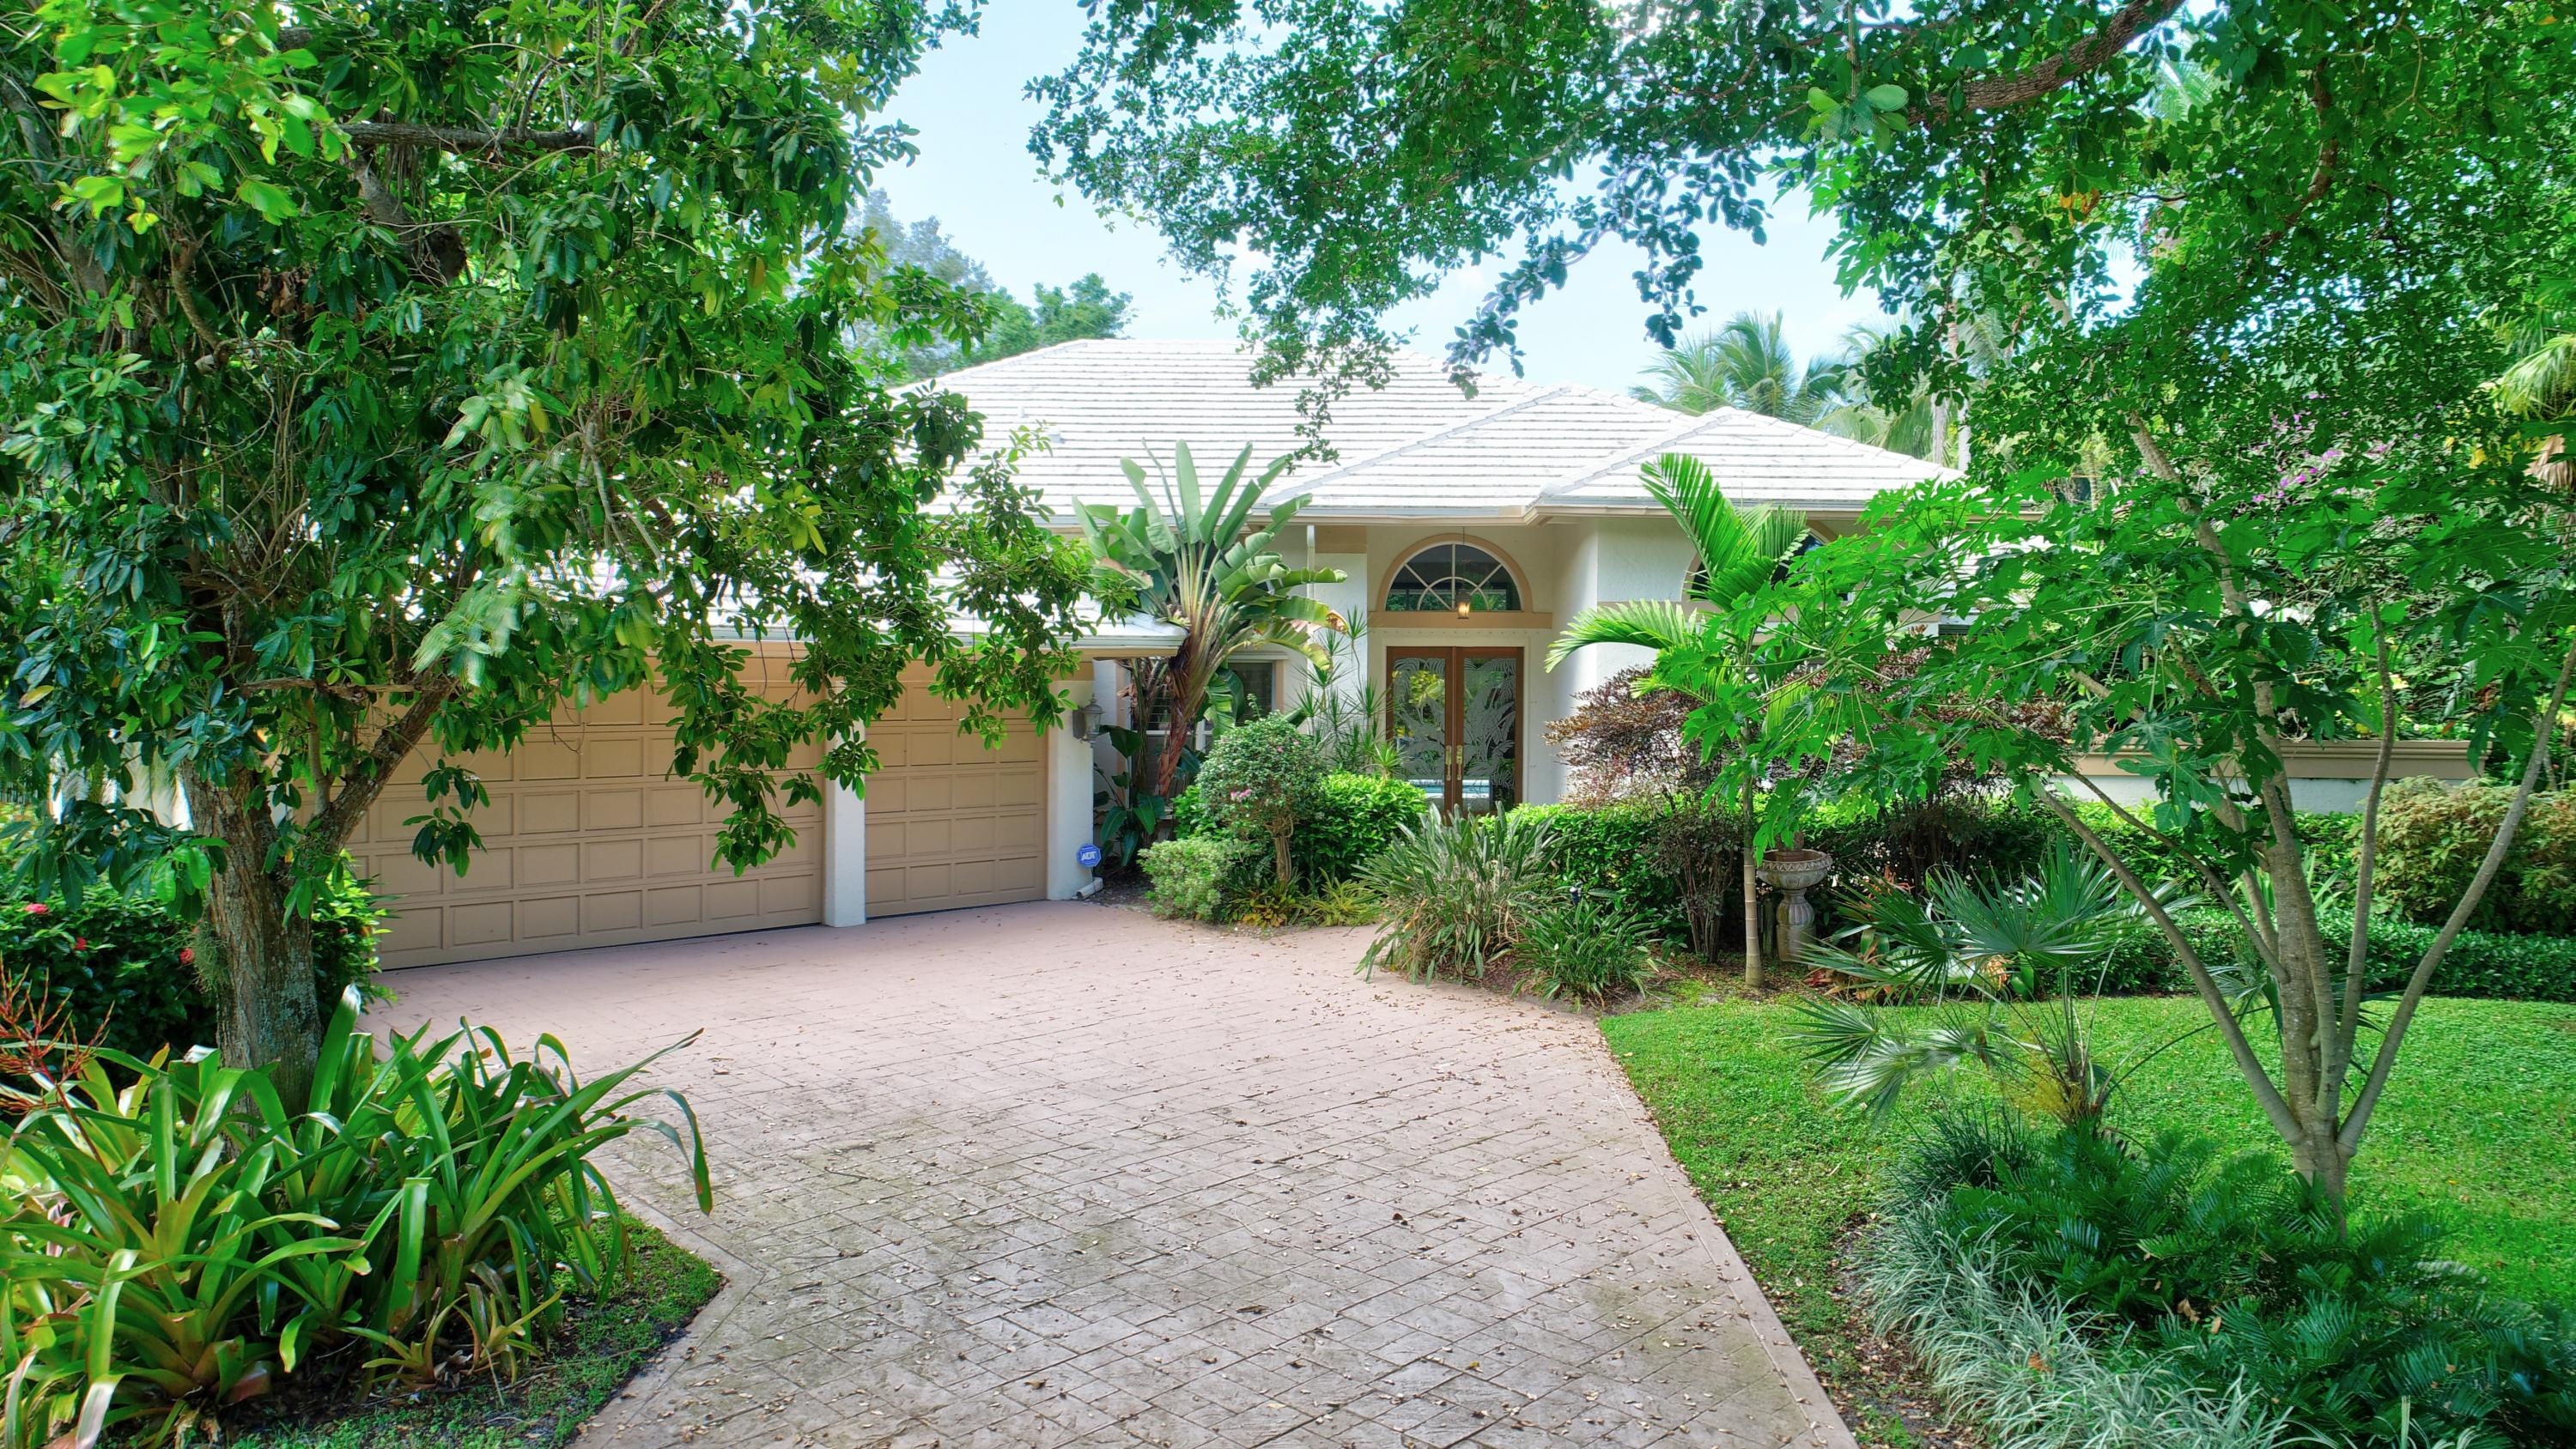 Boca Raton: Les Jardins - listed at 1,100,000 (2345 NW 46th St)